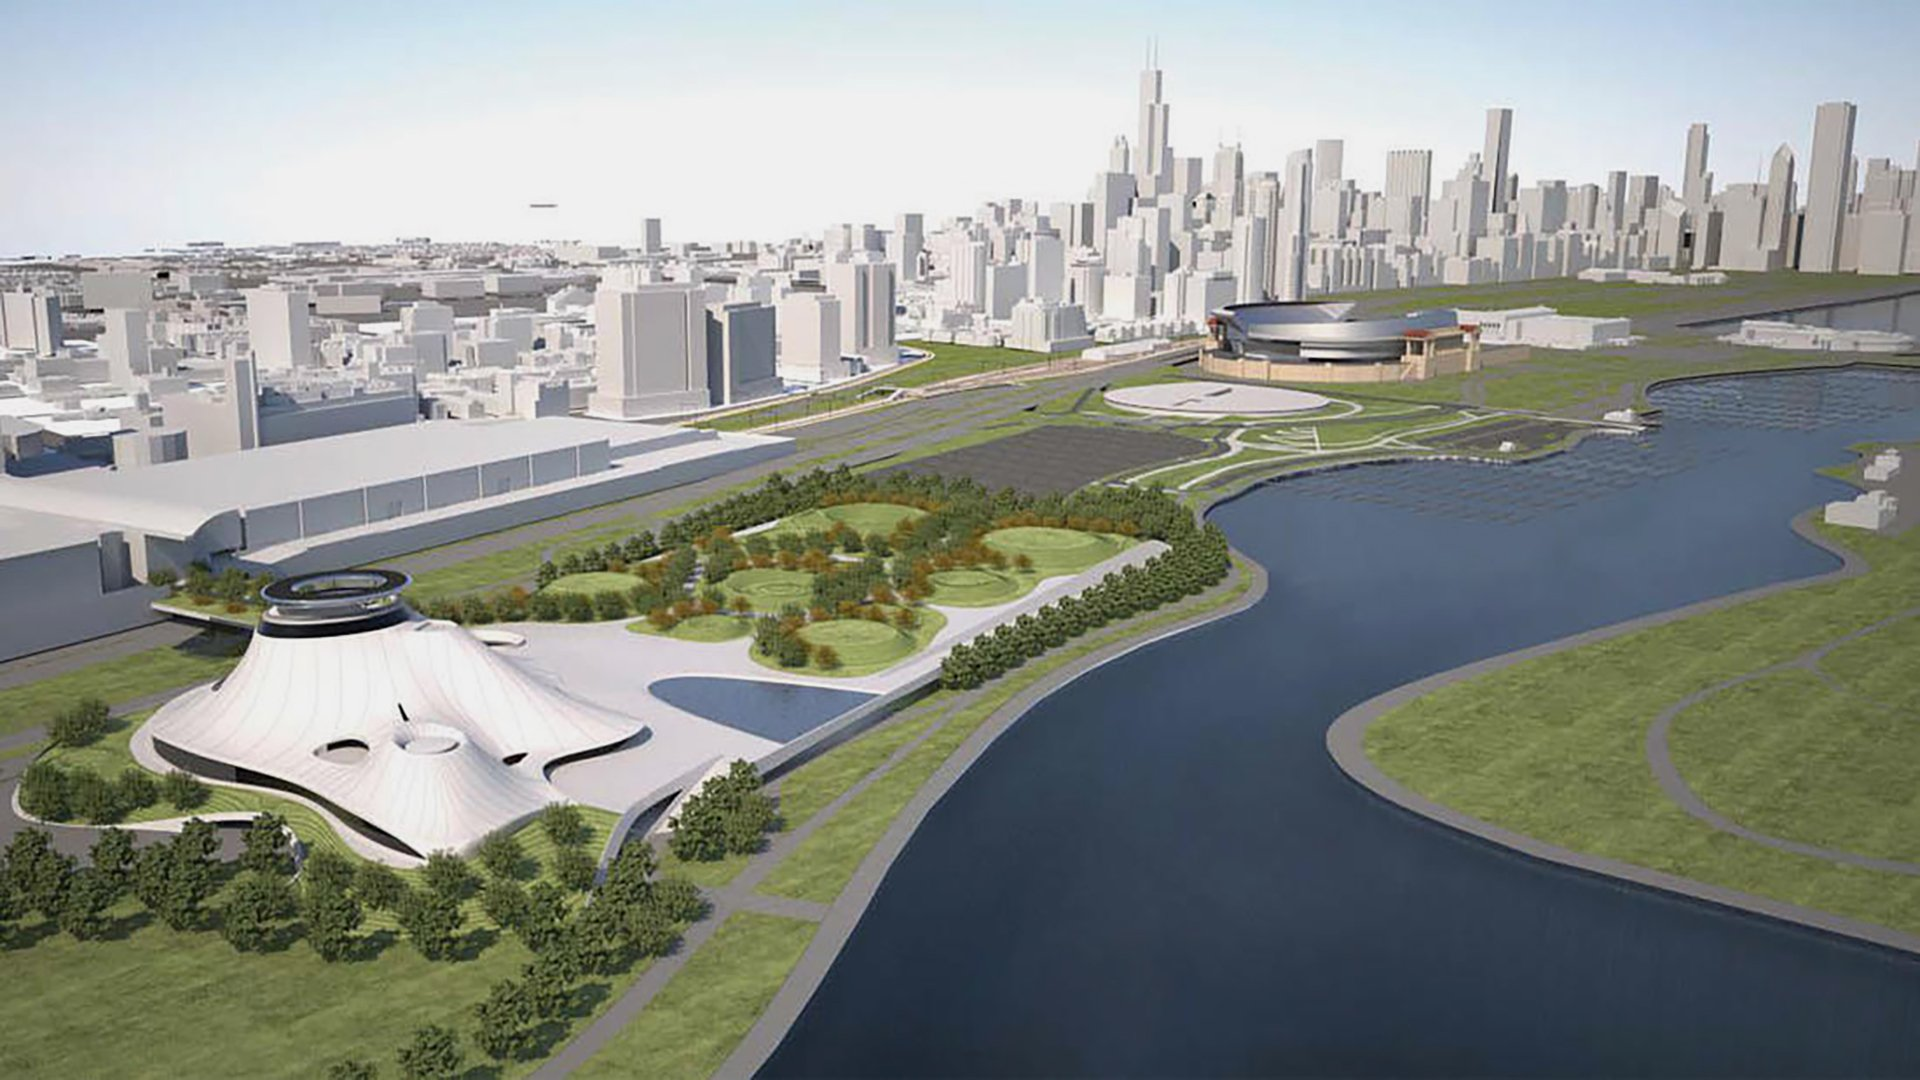 Chicago loses lucas museum to california chicago tonight for Star wars museum california